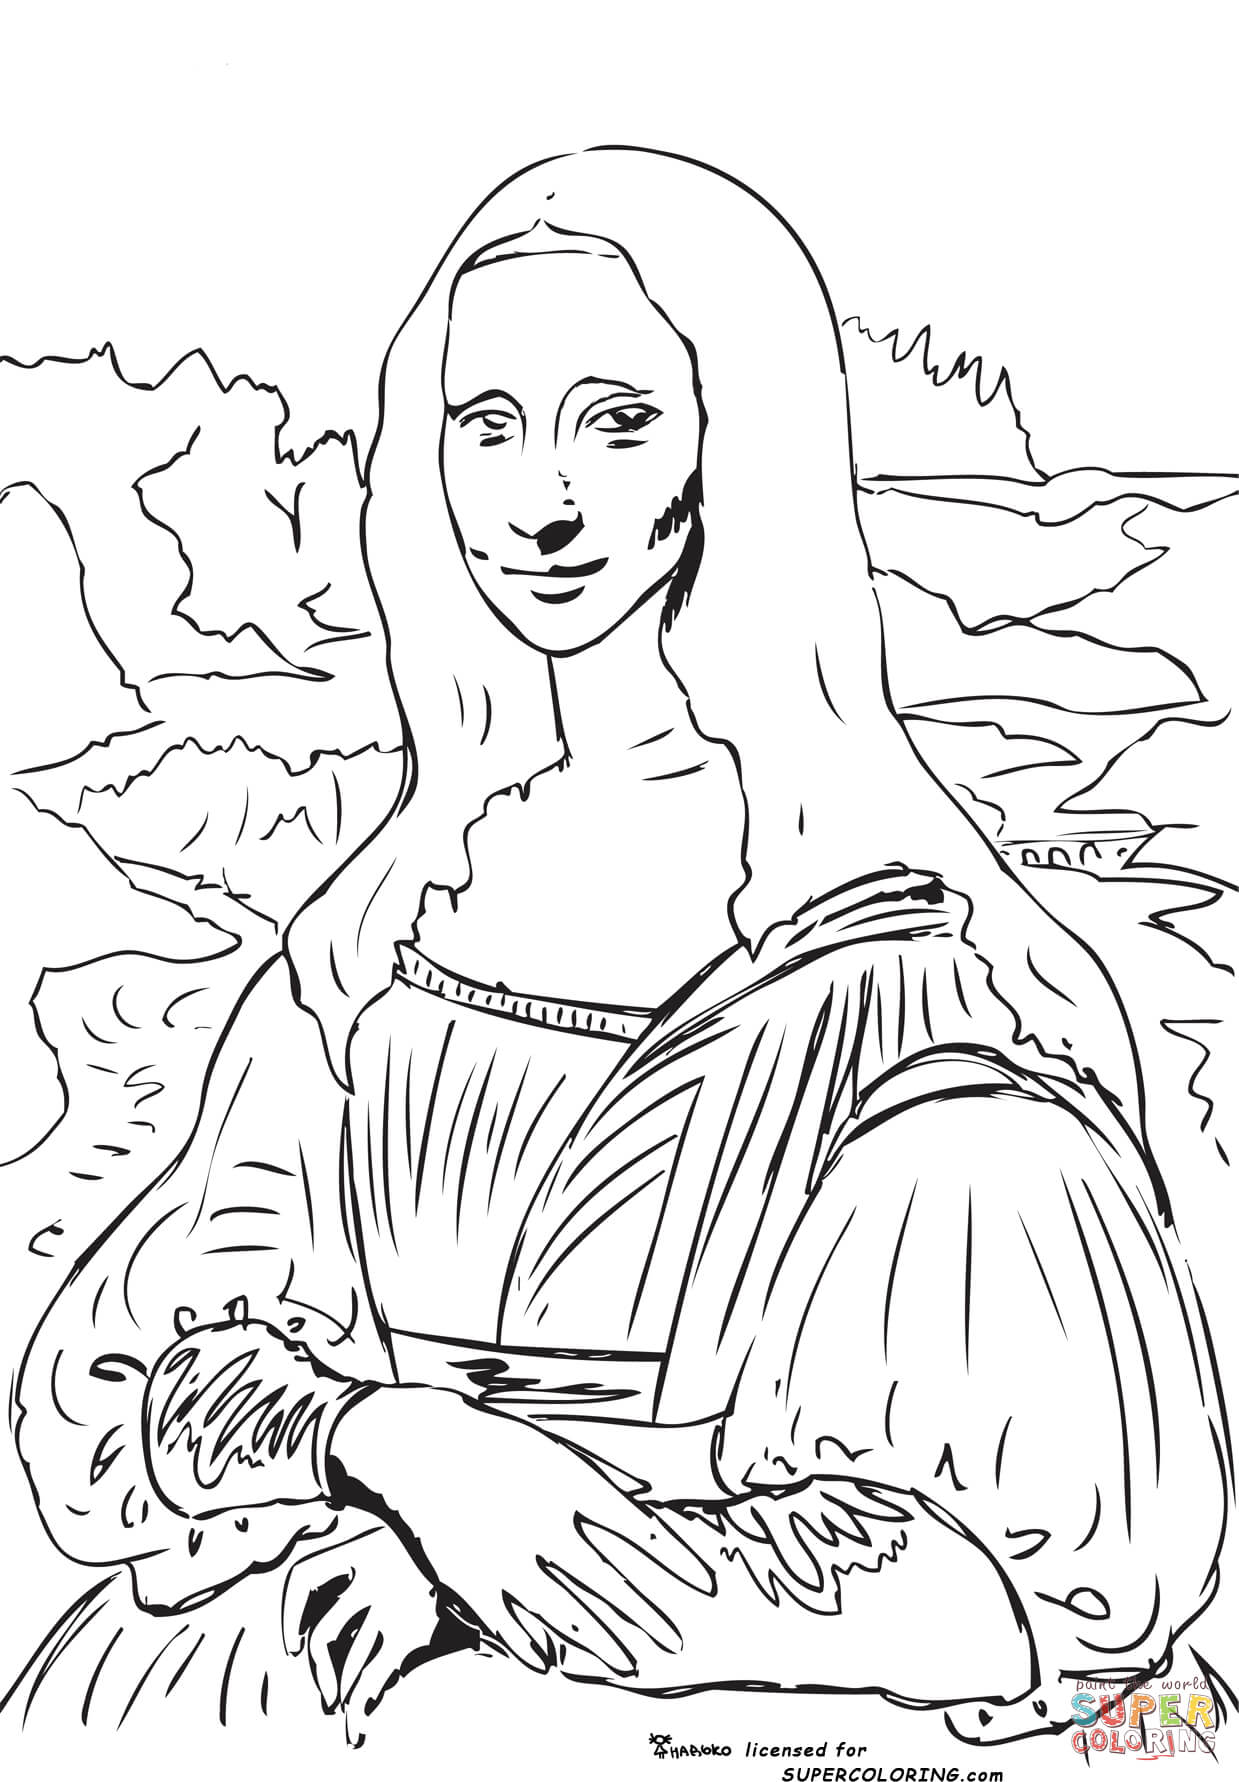 Famous Painting Colouring Pages